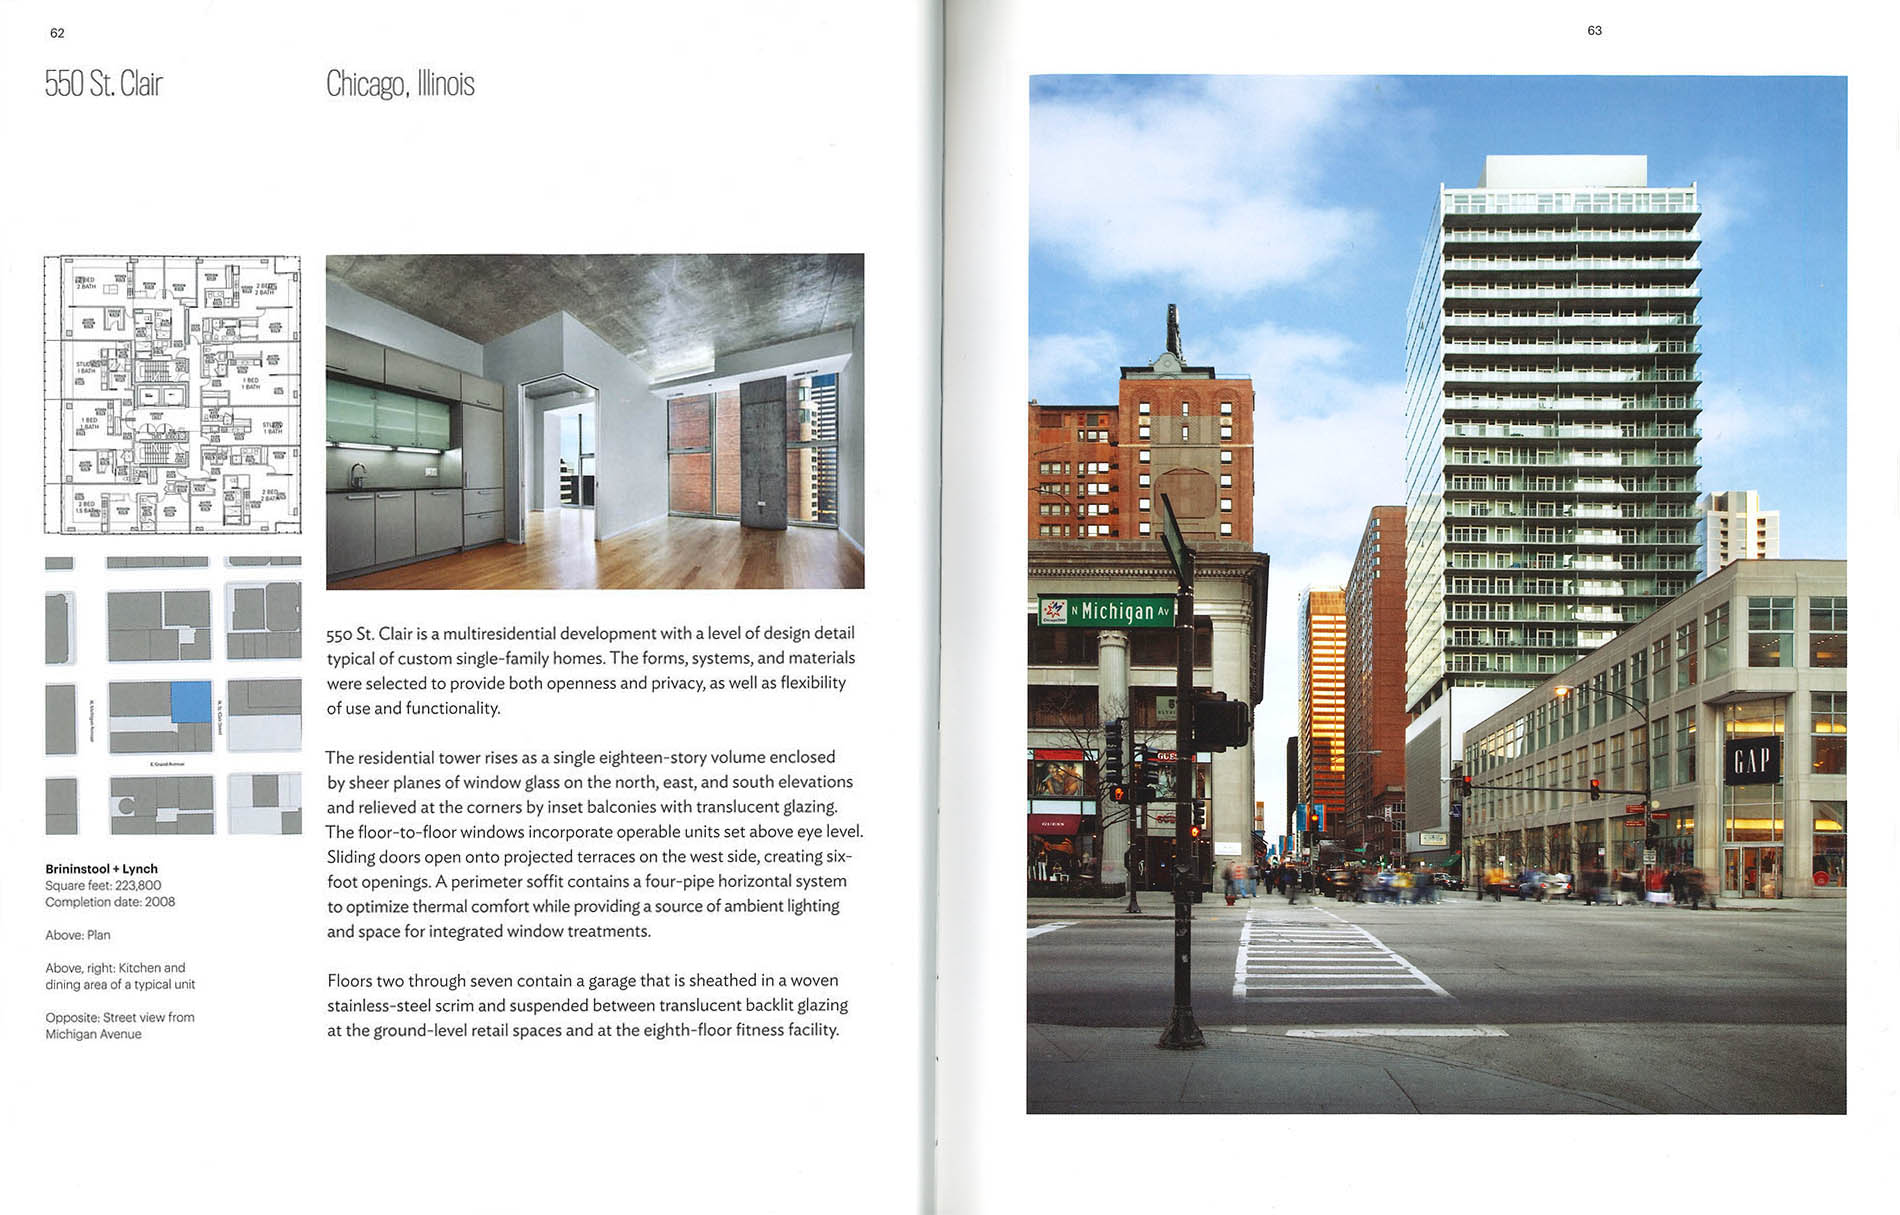 Modern American Housing: High-Rise, Reuse, Infill, Princeton Architectural Press, 2013.